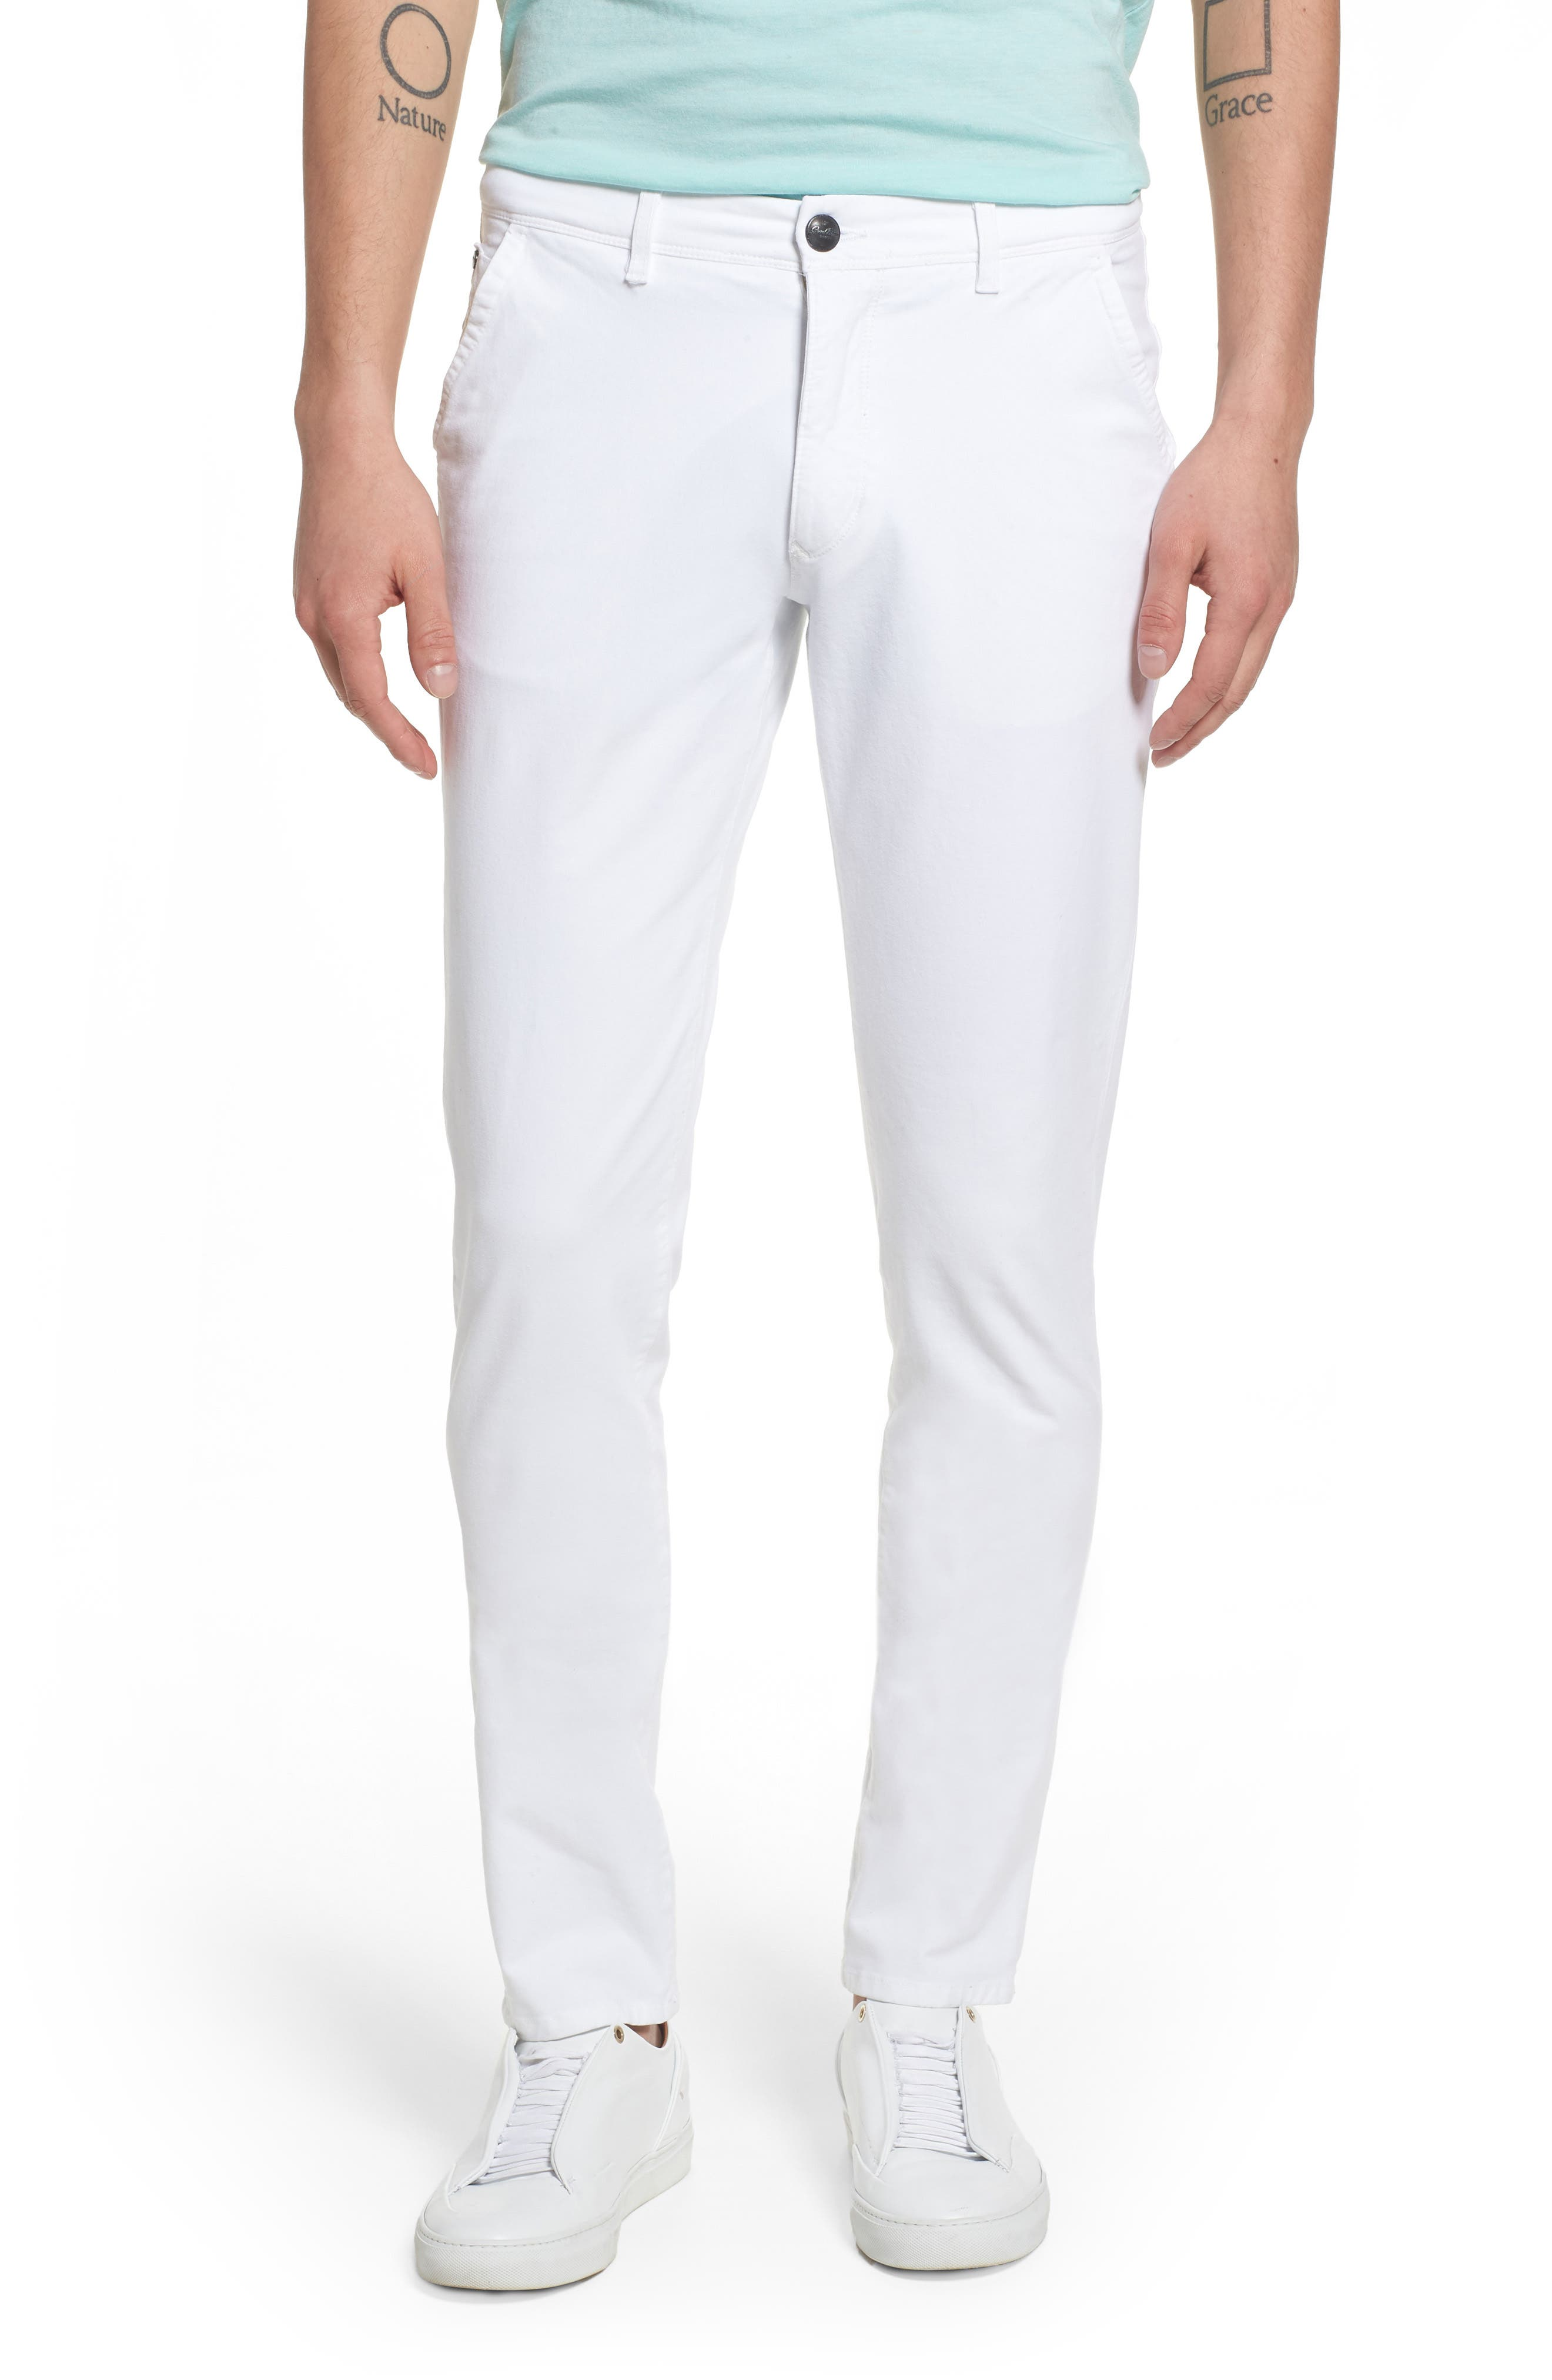 Hybrid Slim Fit Stretch Pants,                         Main,                         color, White